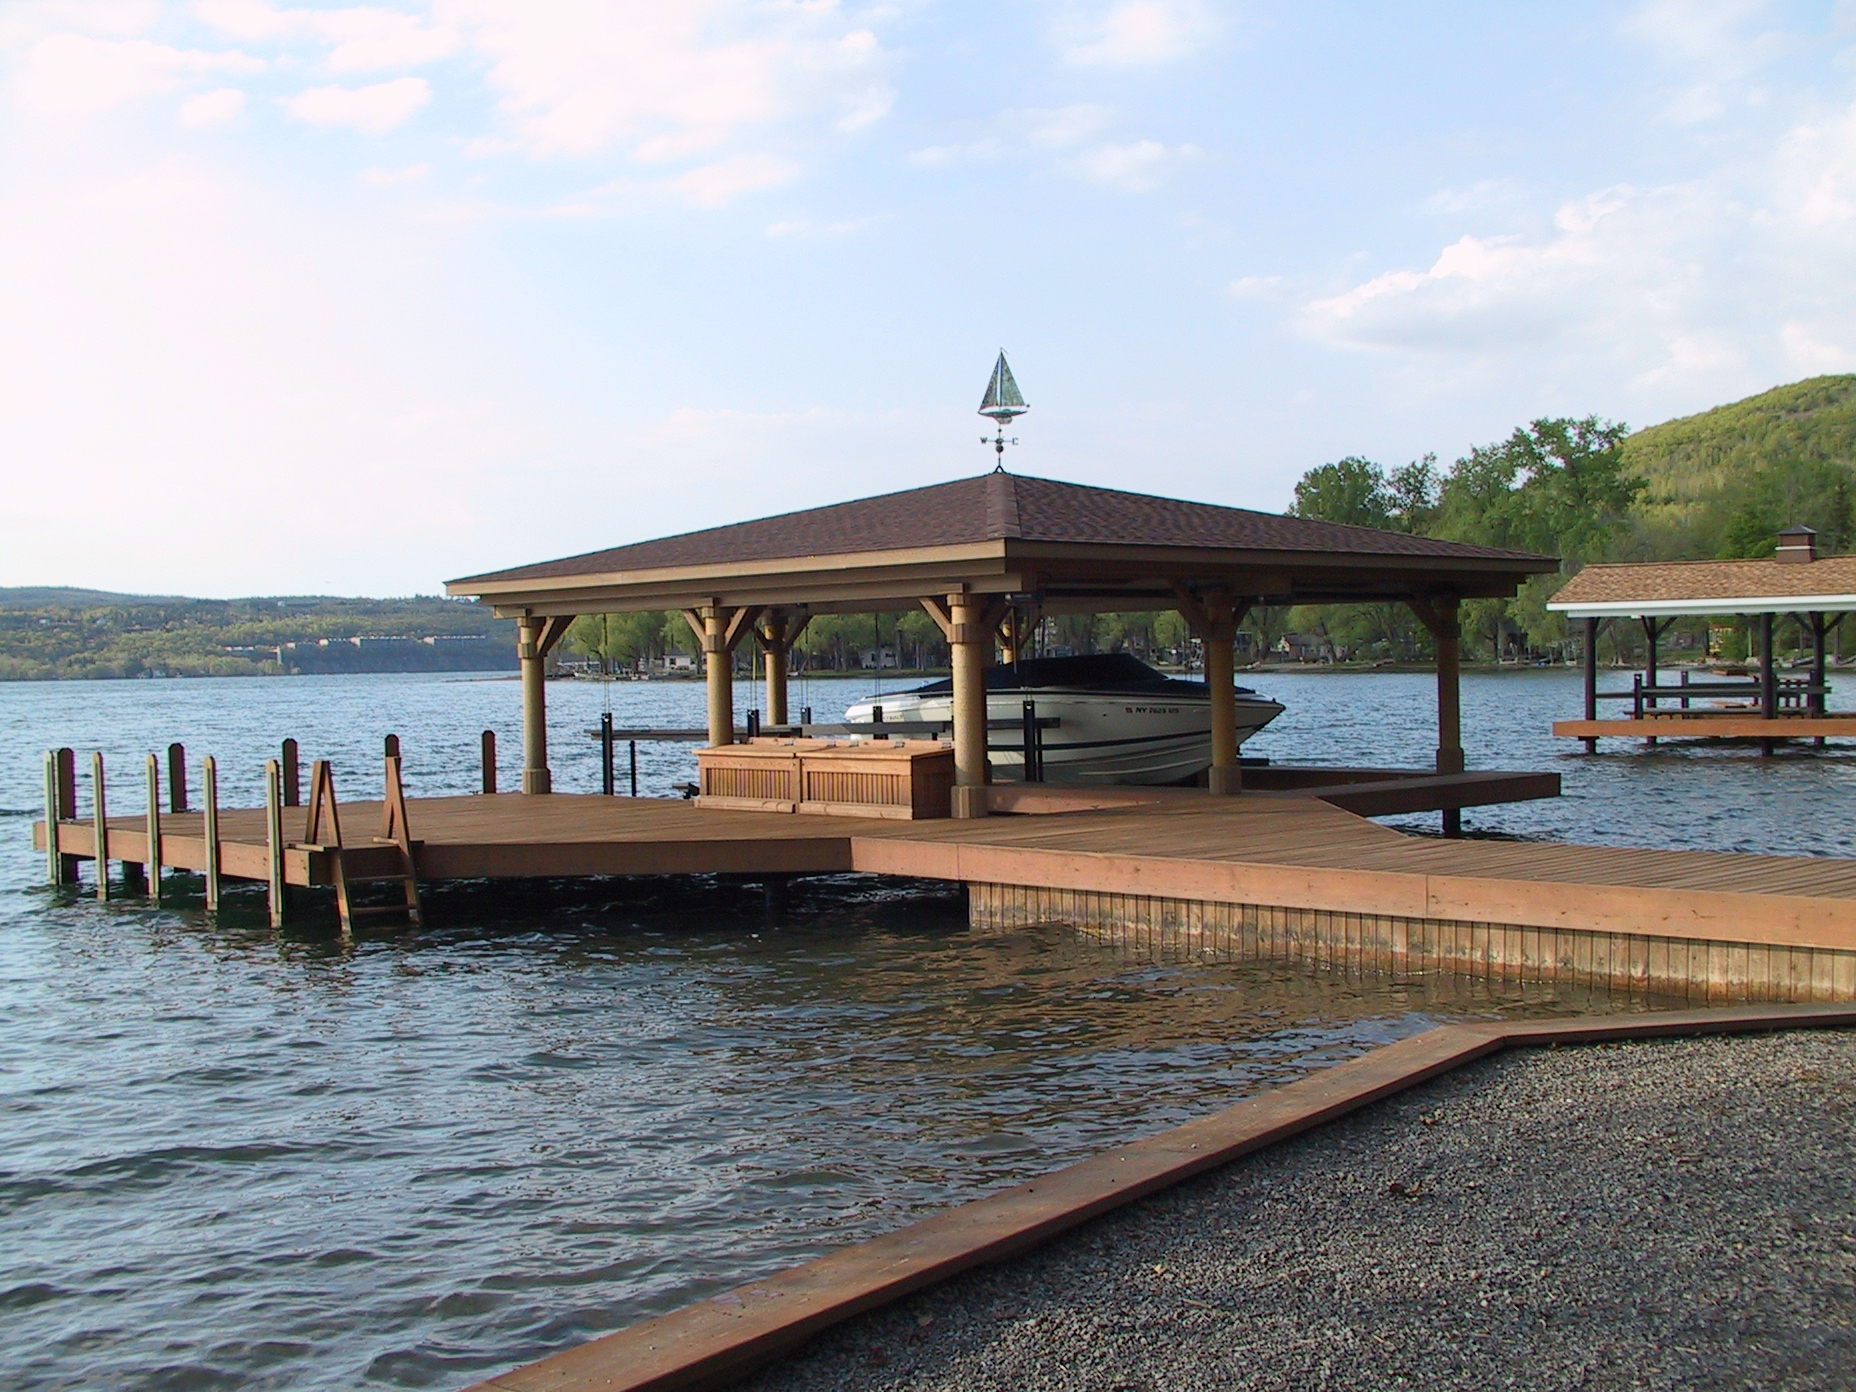 Boat Dock Designs http://www.wordenhillinc.com/contact.html